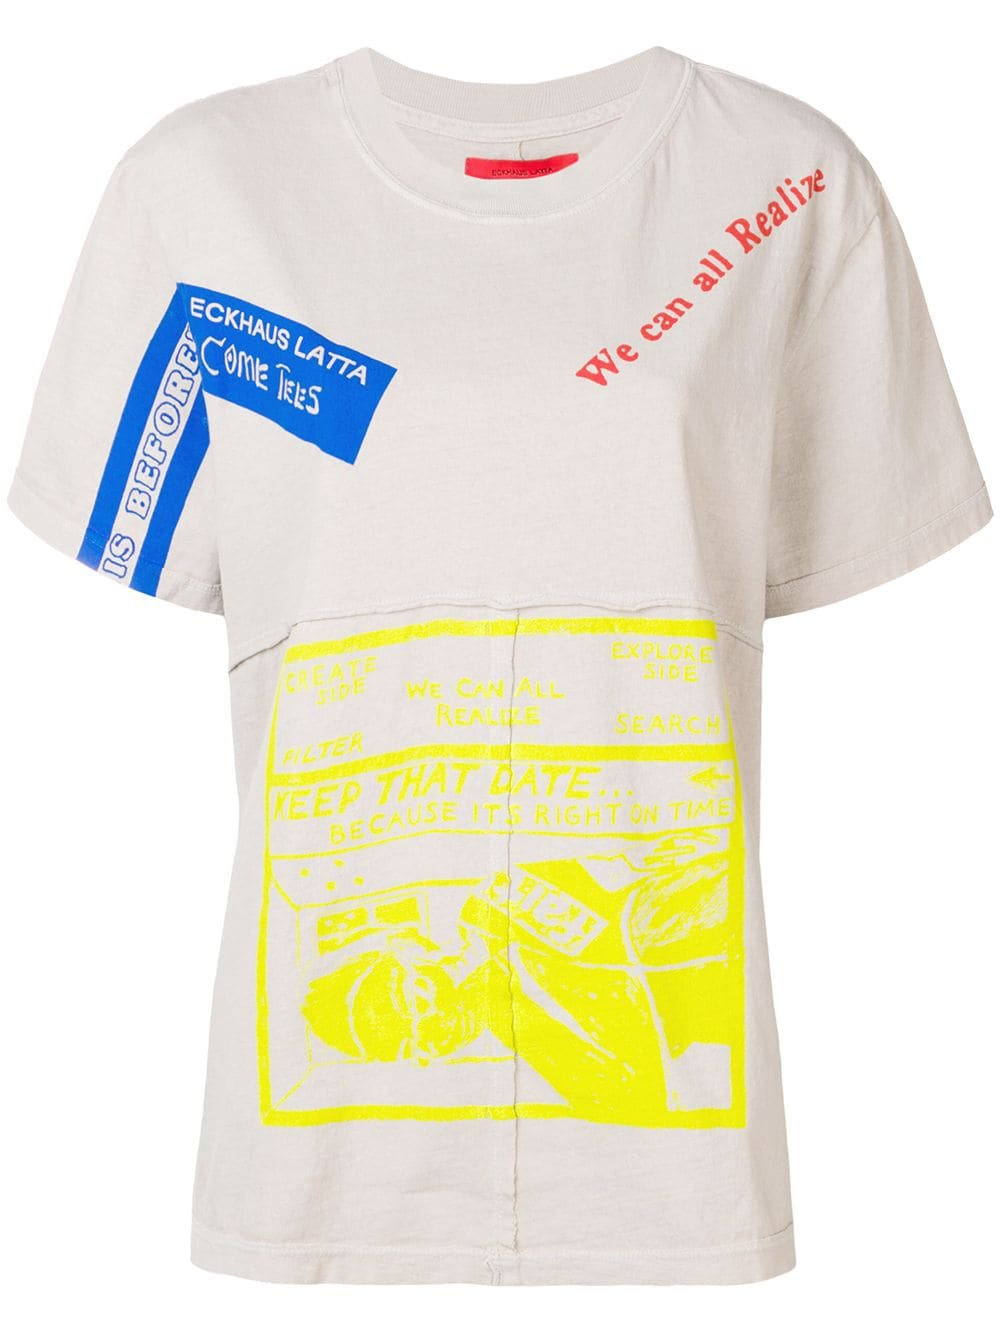 Eckhaus Latta We Can All Realize T-shirt $99 - Buy Online - Mobile Friendly, Fast Delivery, Price